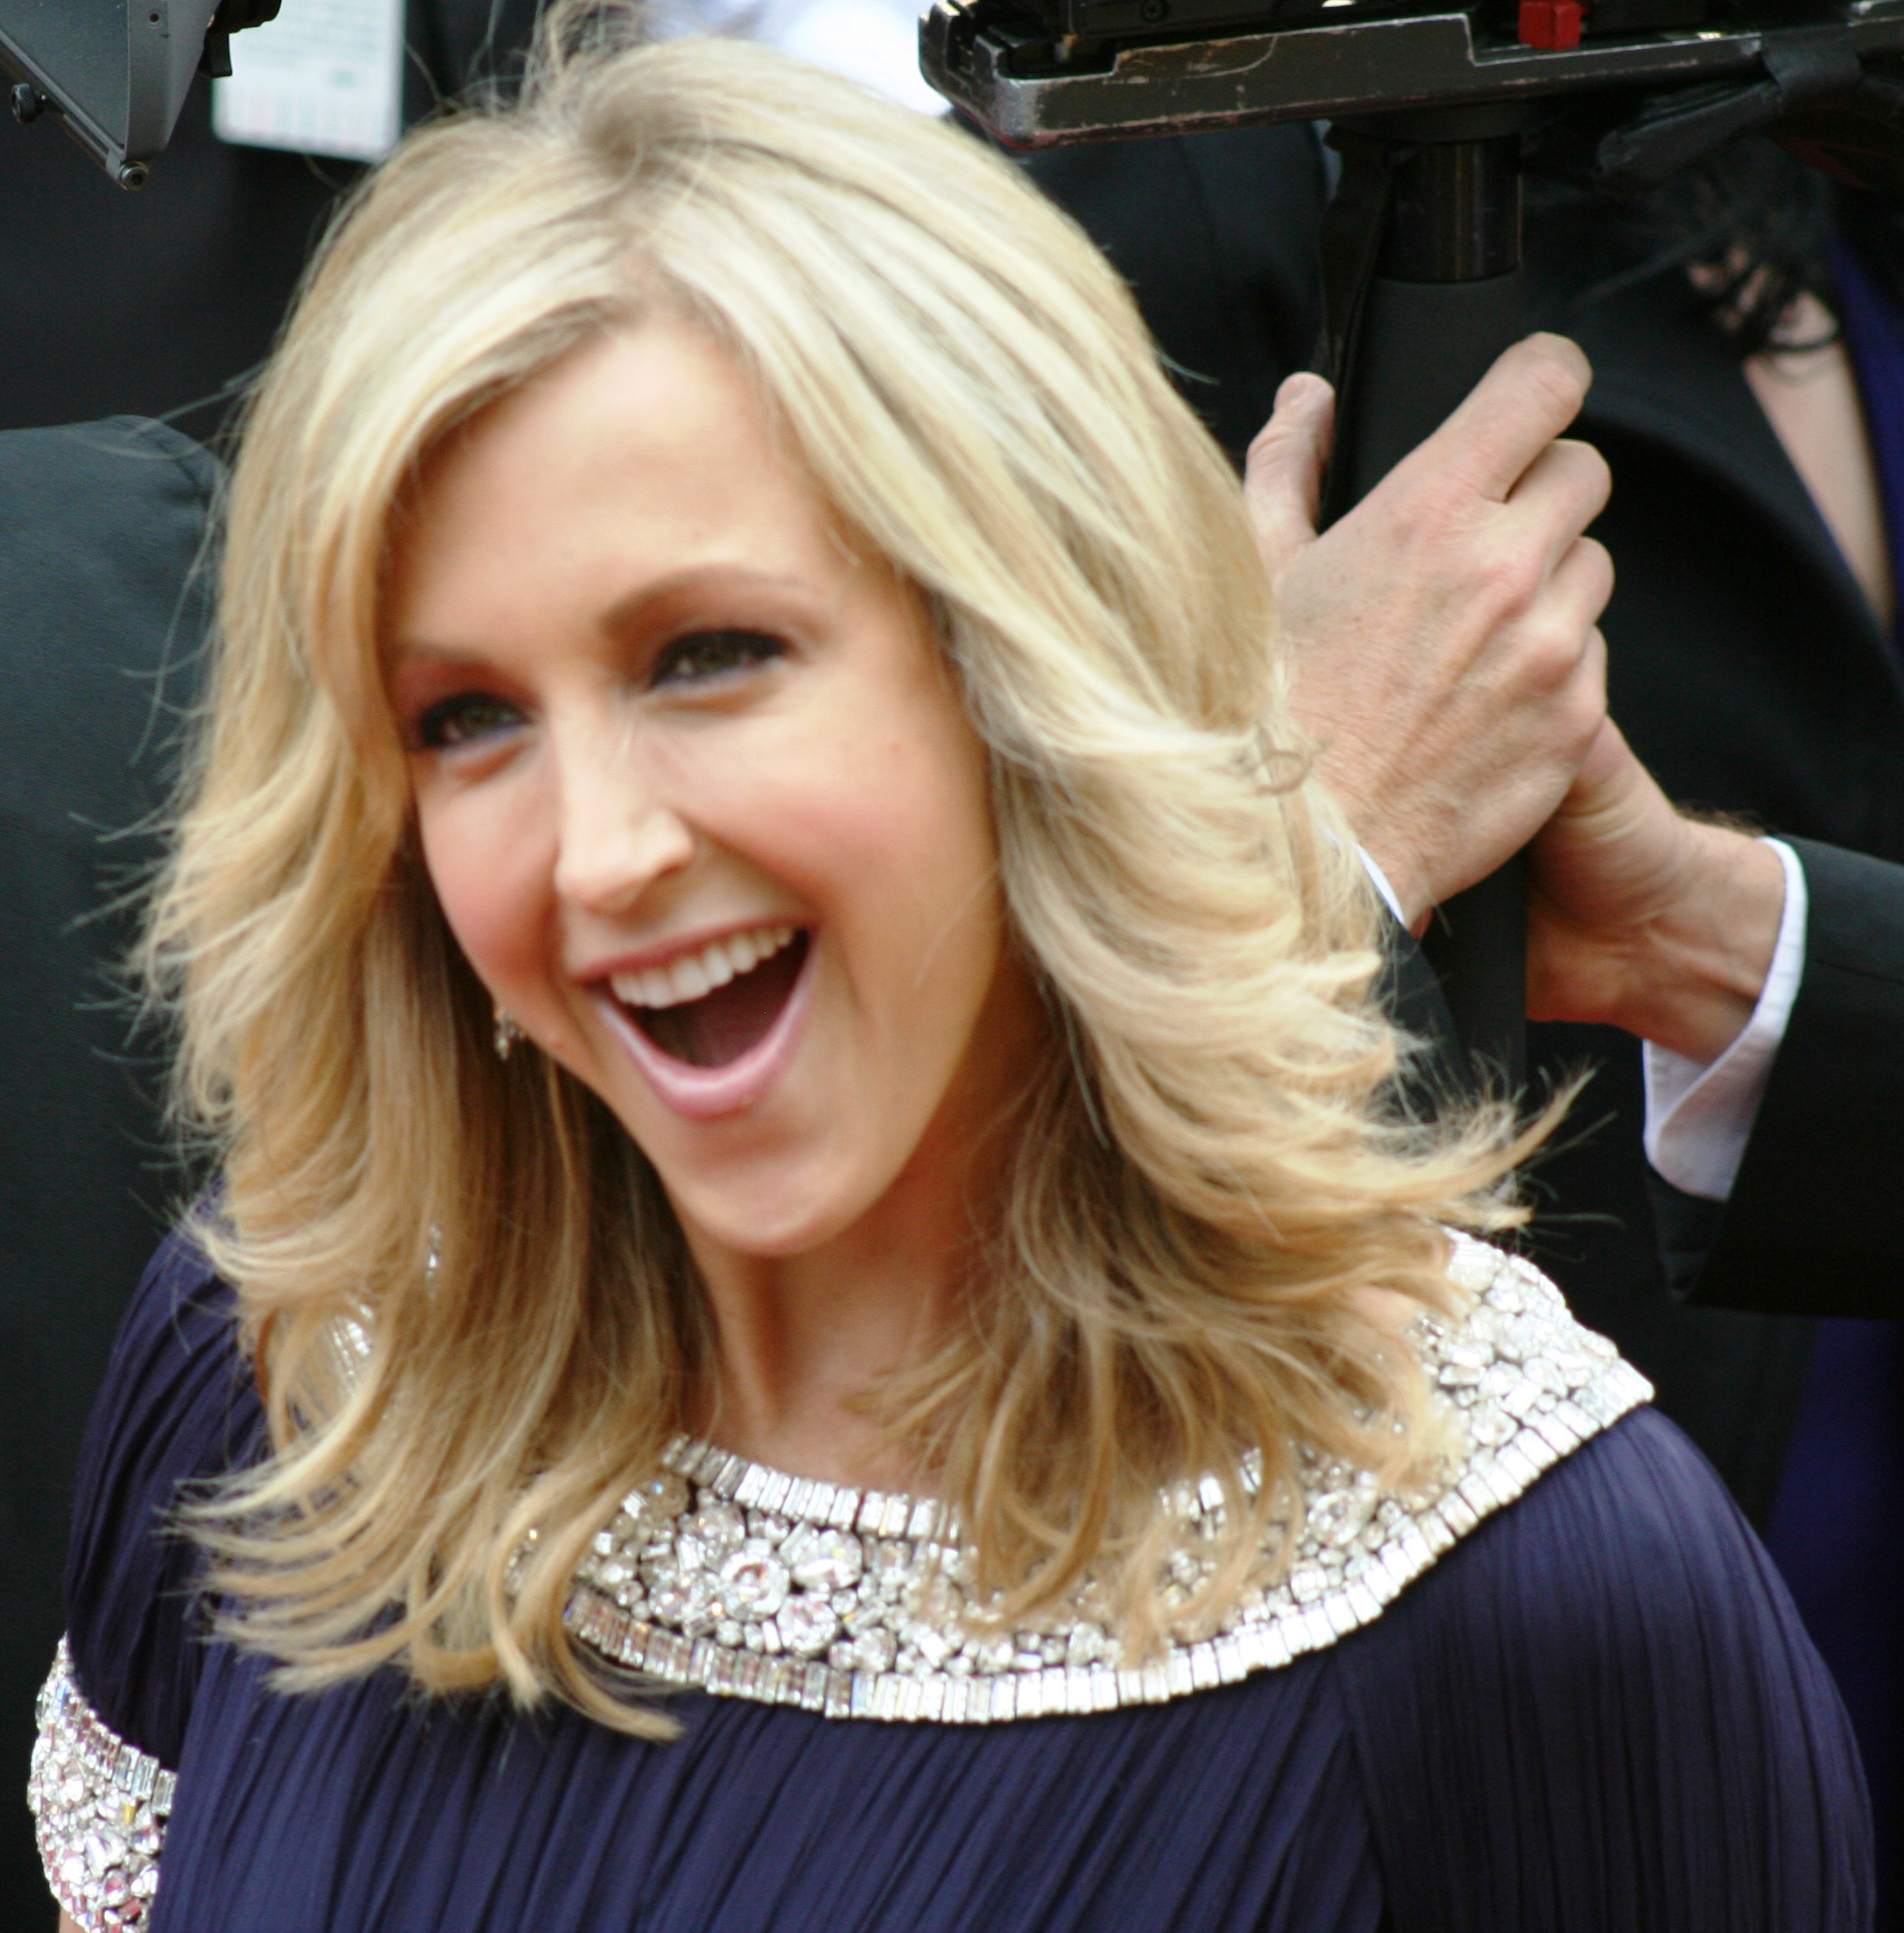 The 49-year old daughter of father Richard von Seelen and mother Carolyn von Seelen Lara Spencer in 2019 photo. Lara Spencer earned a  million dollar salary - leaving the net worth at 6 million in 2019